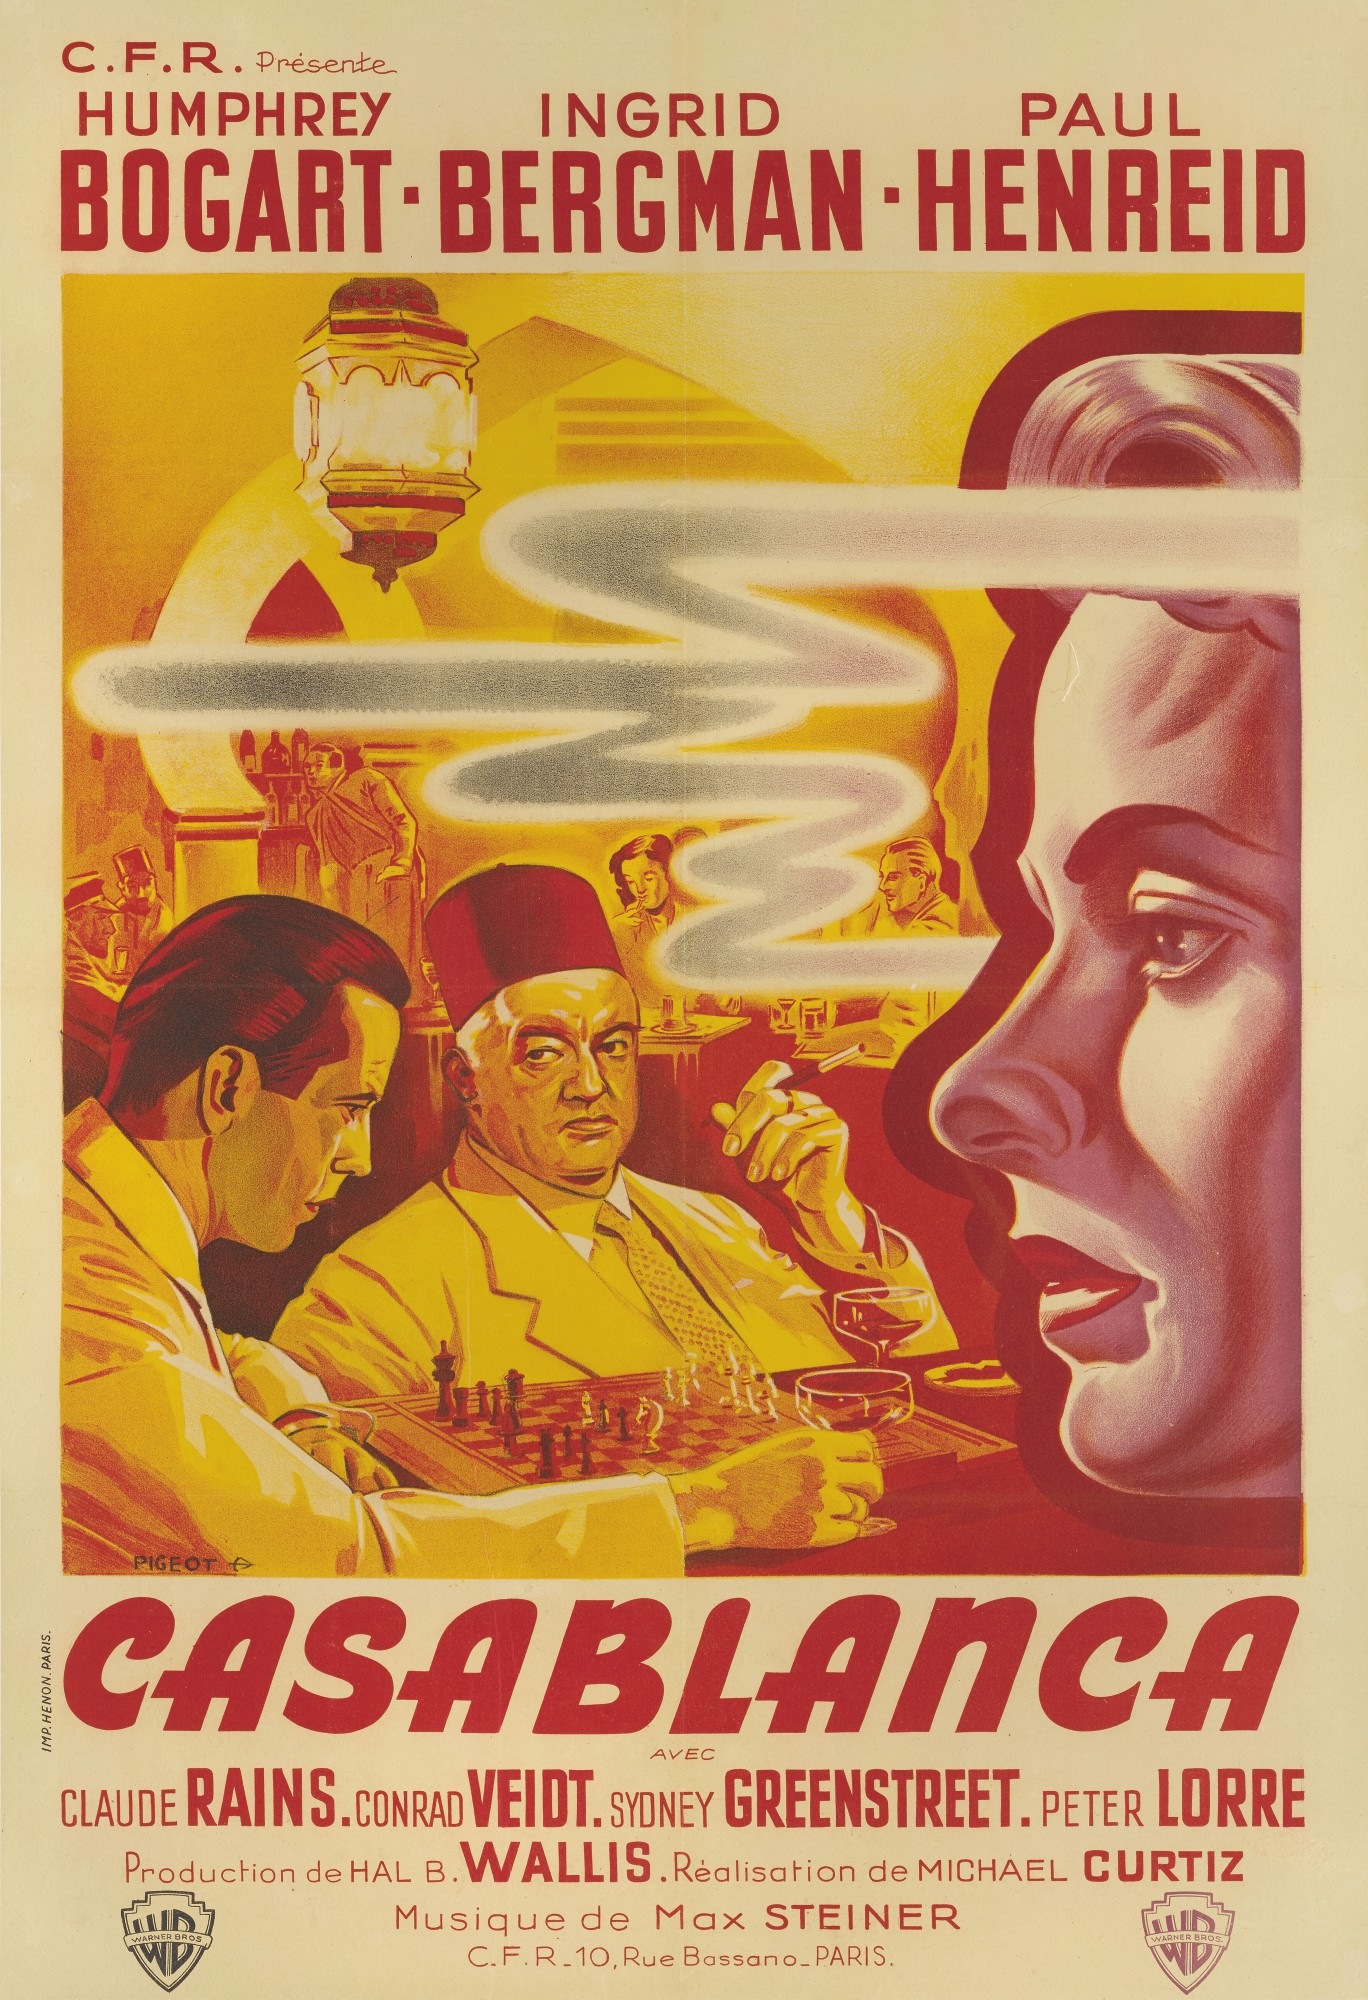 CASABLANCA (1942) FIRST FRENCH RELEASE POSTER, 1947 | Original Film Posters  Online2020 | Sotheby's